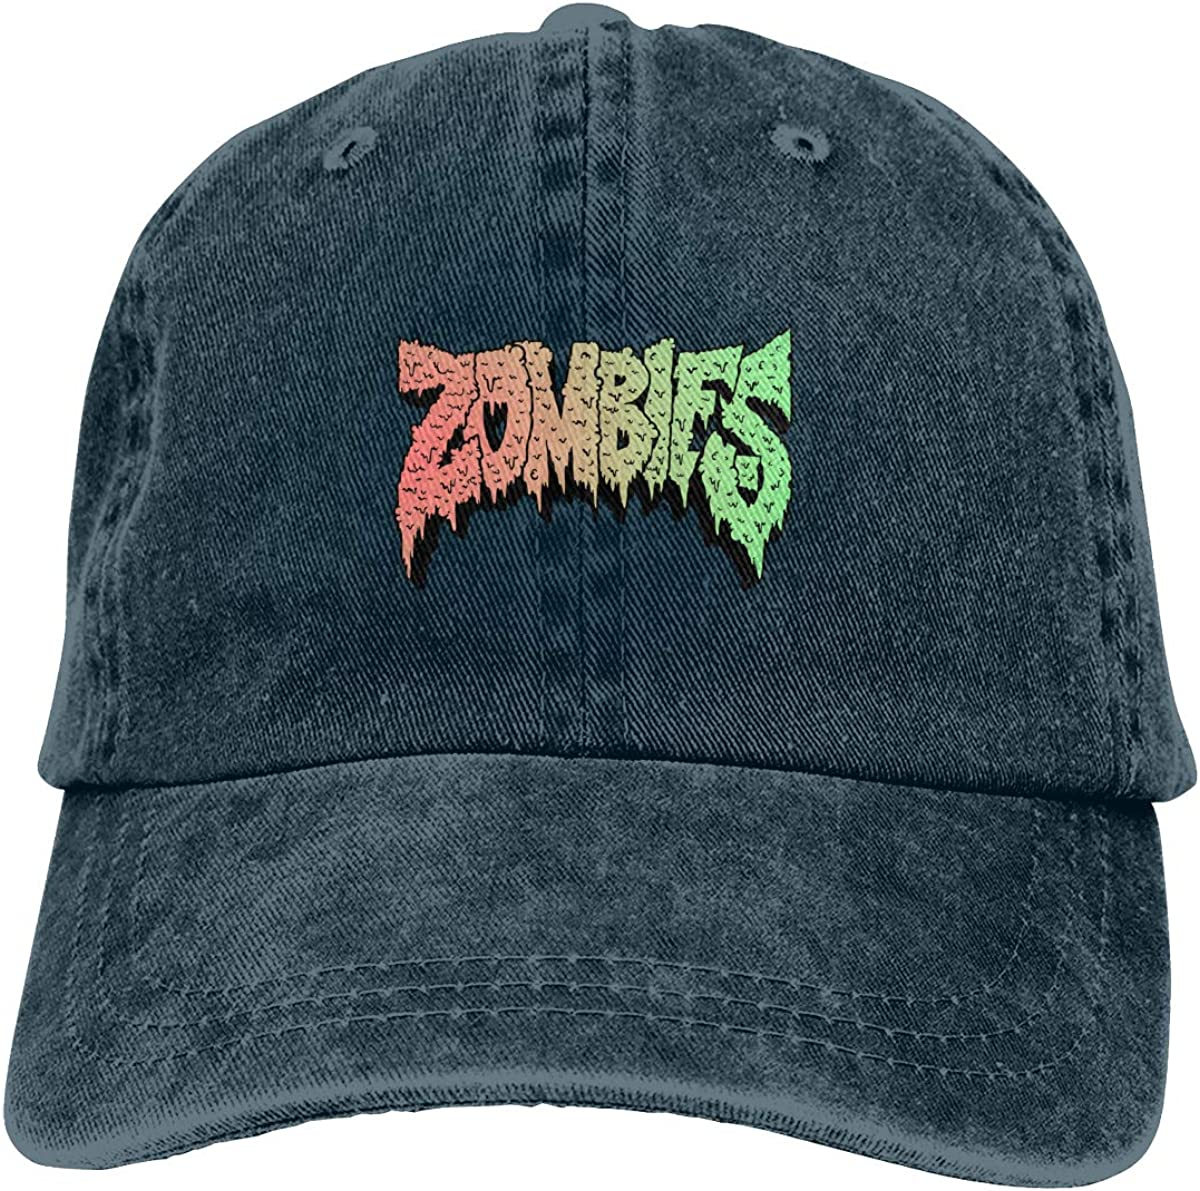 Eugrandet Flatbush Zombies Unisex Baseball Cap Twill Adjustable Hat